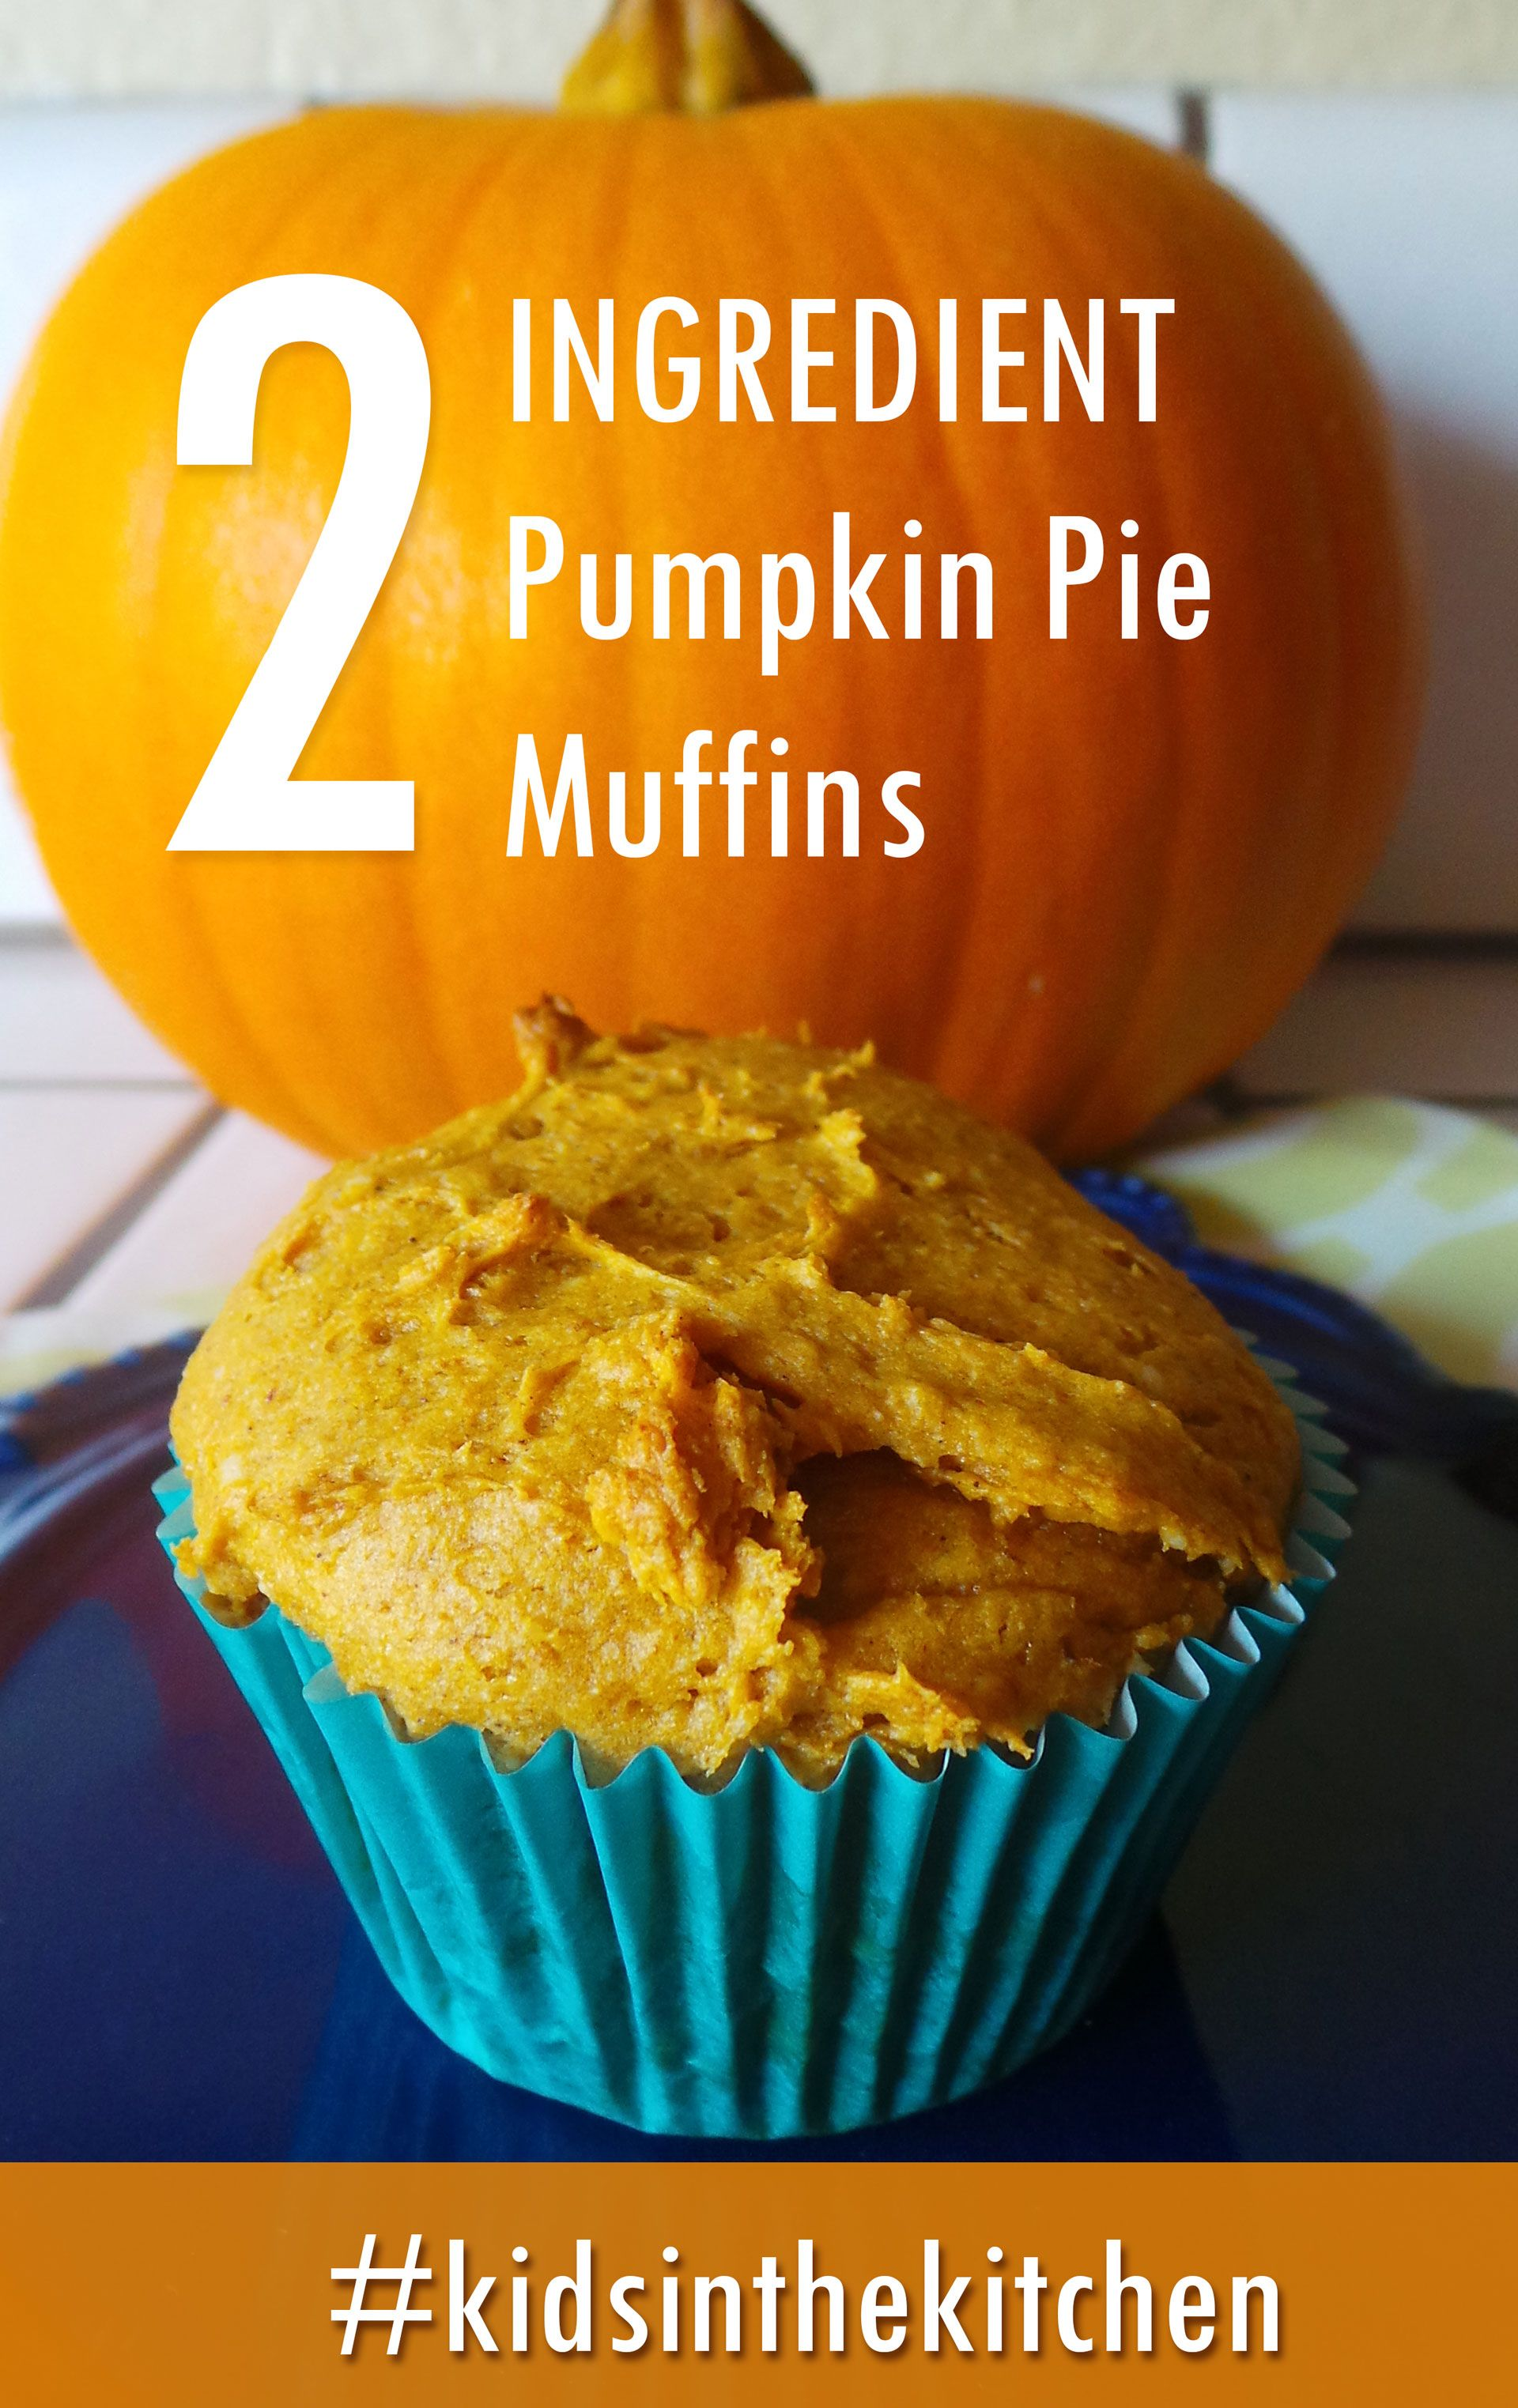 Pumpkin Muffin Recipe - Easy 2 ingredient pumpkin muffin recipe #pumpkinmuffins